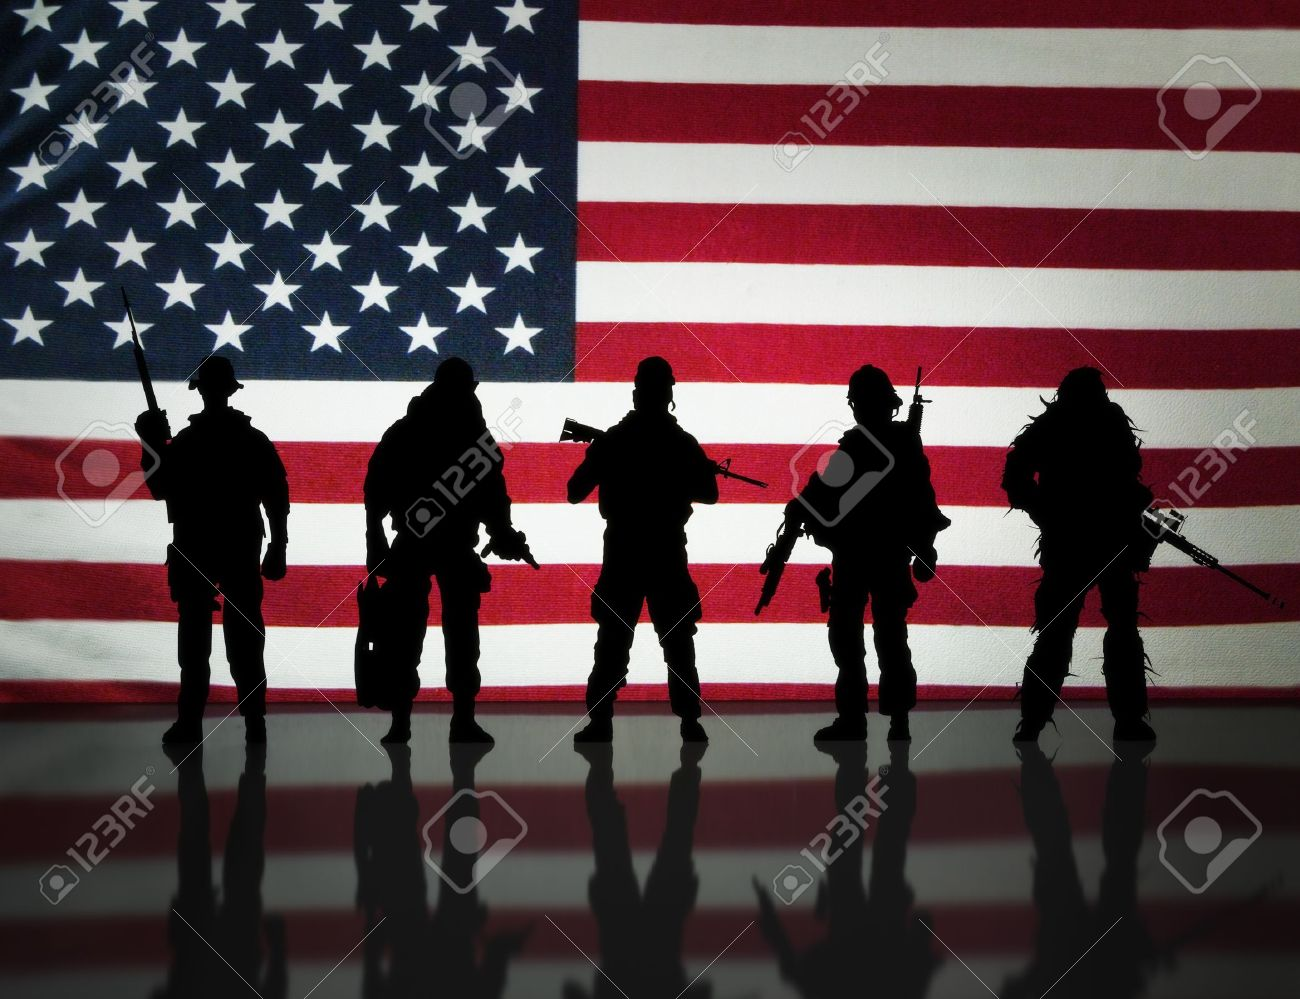 american military special forces silhouette s posing infront stock